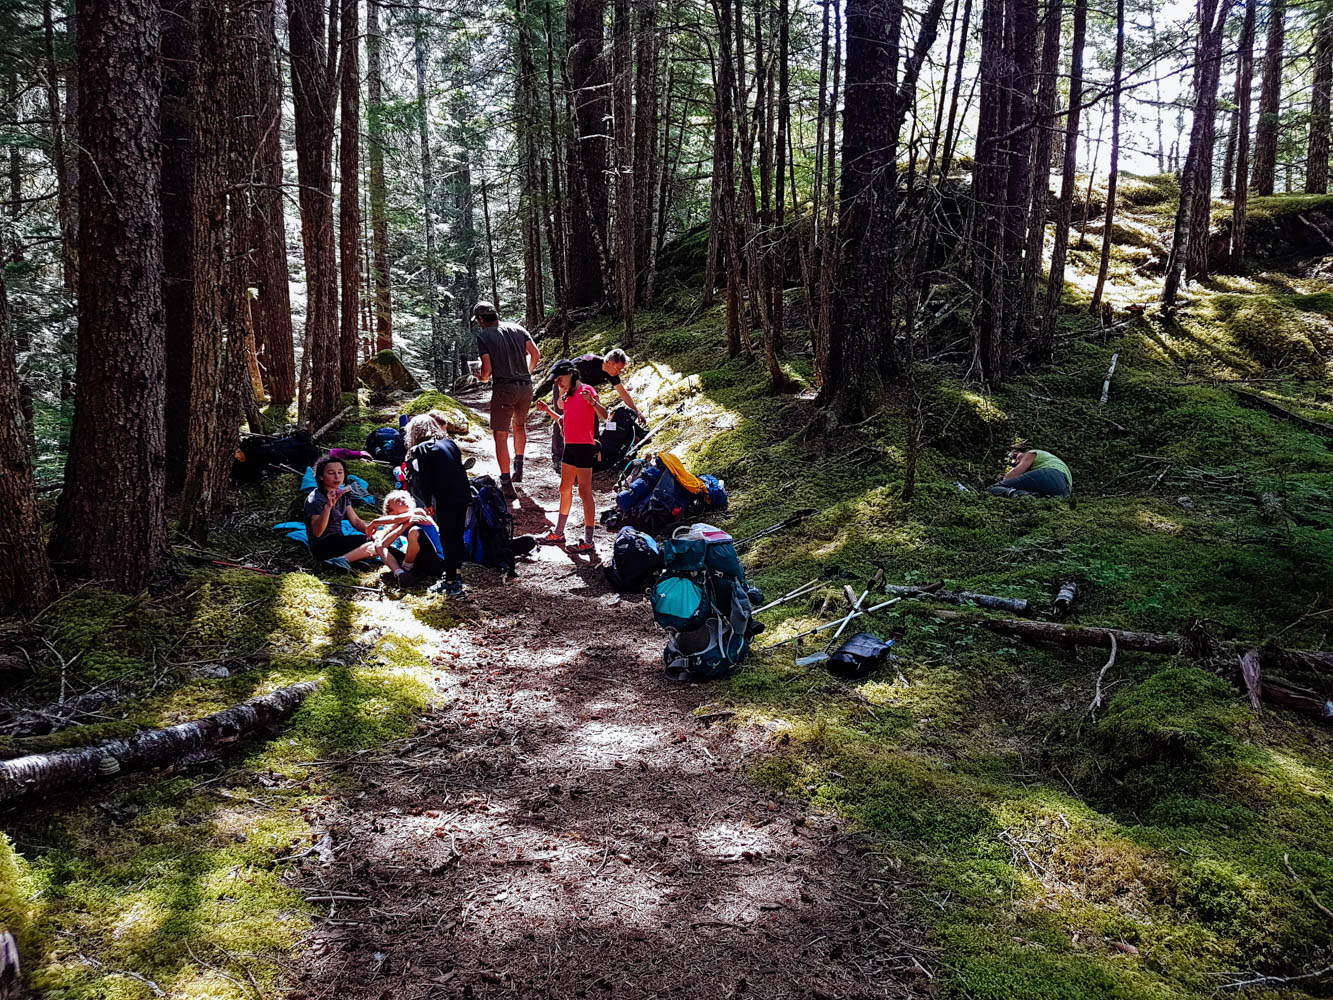 Snack break in the beautiful Alaskan Coastal Forest.